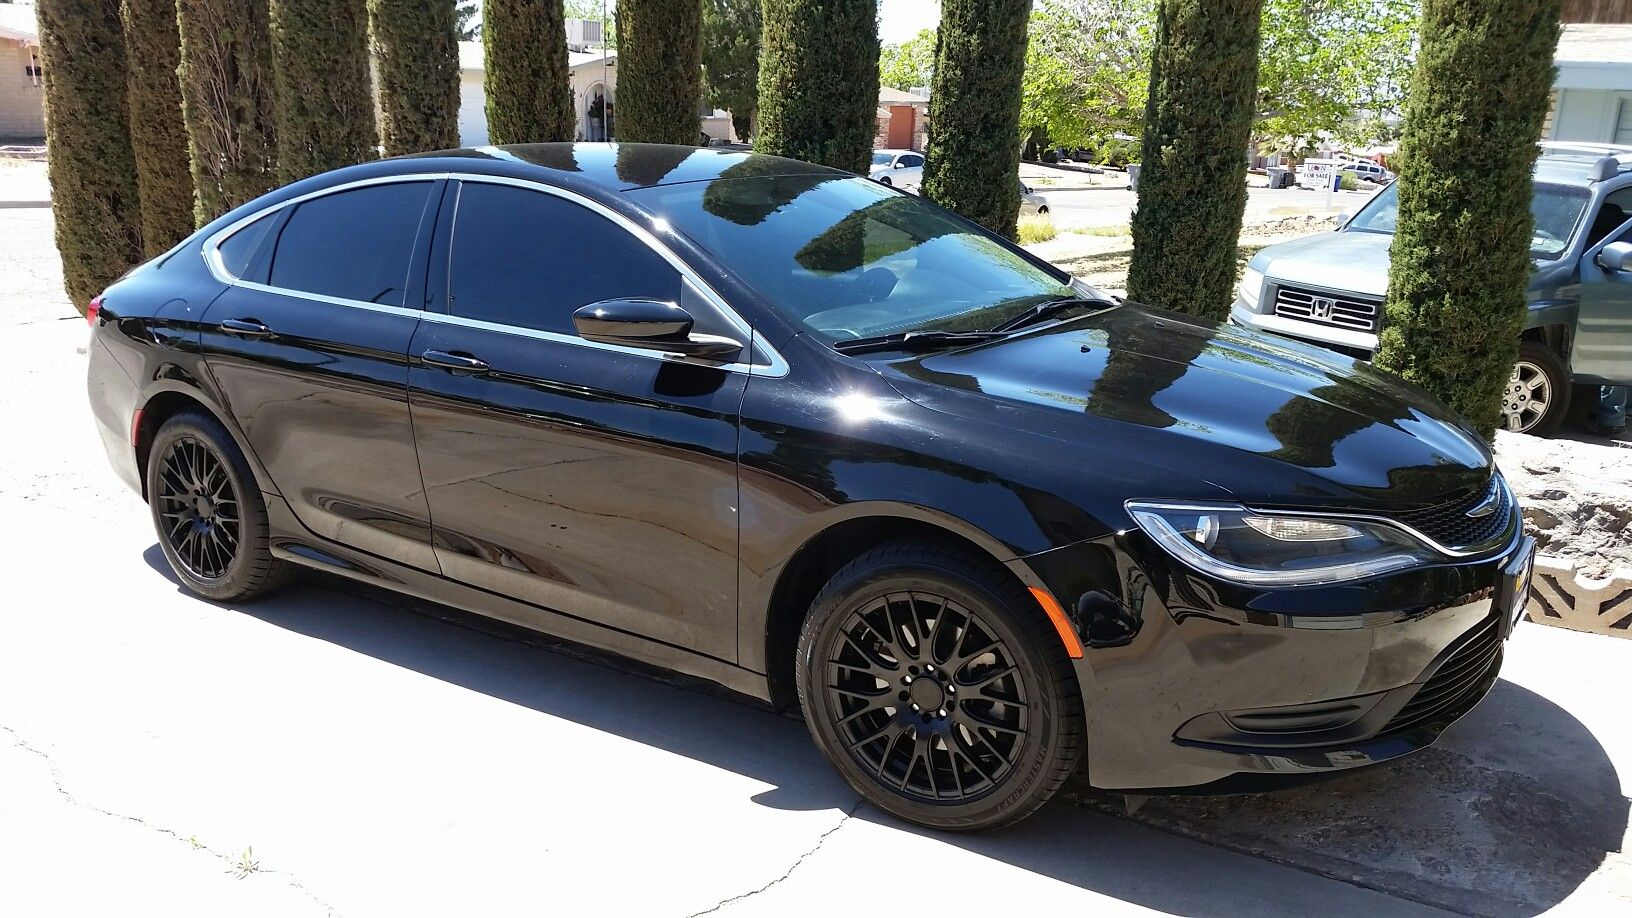 2015 Chrysler 200 Tinted Windows And Black Rims With Images